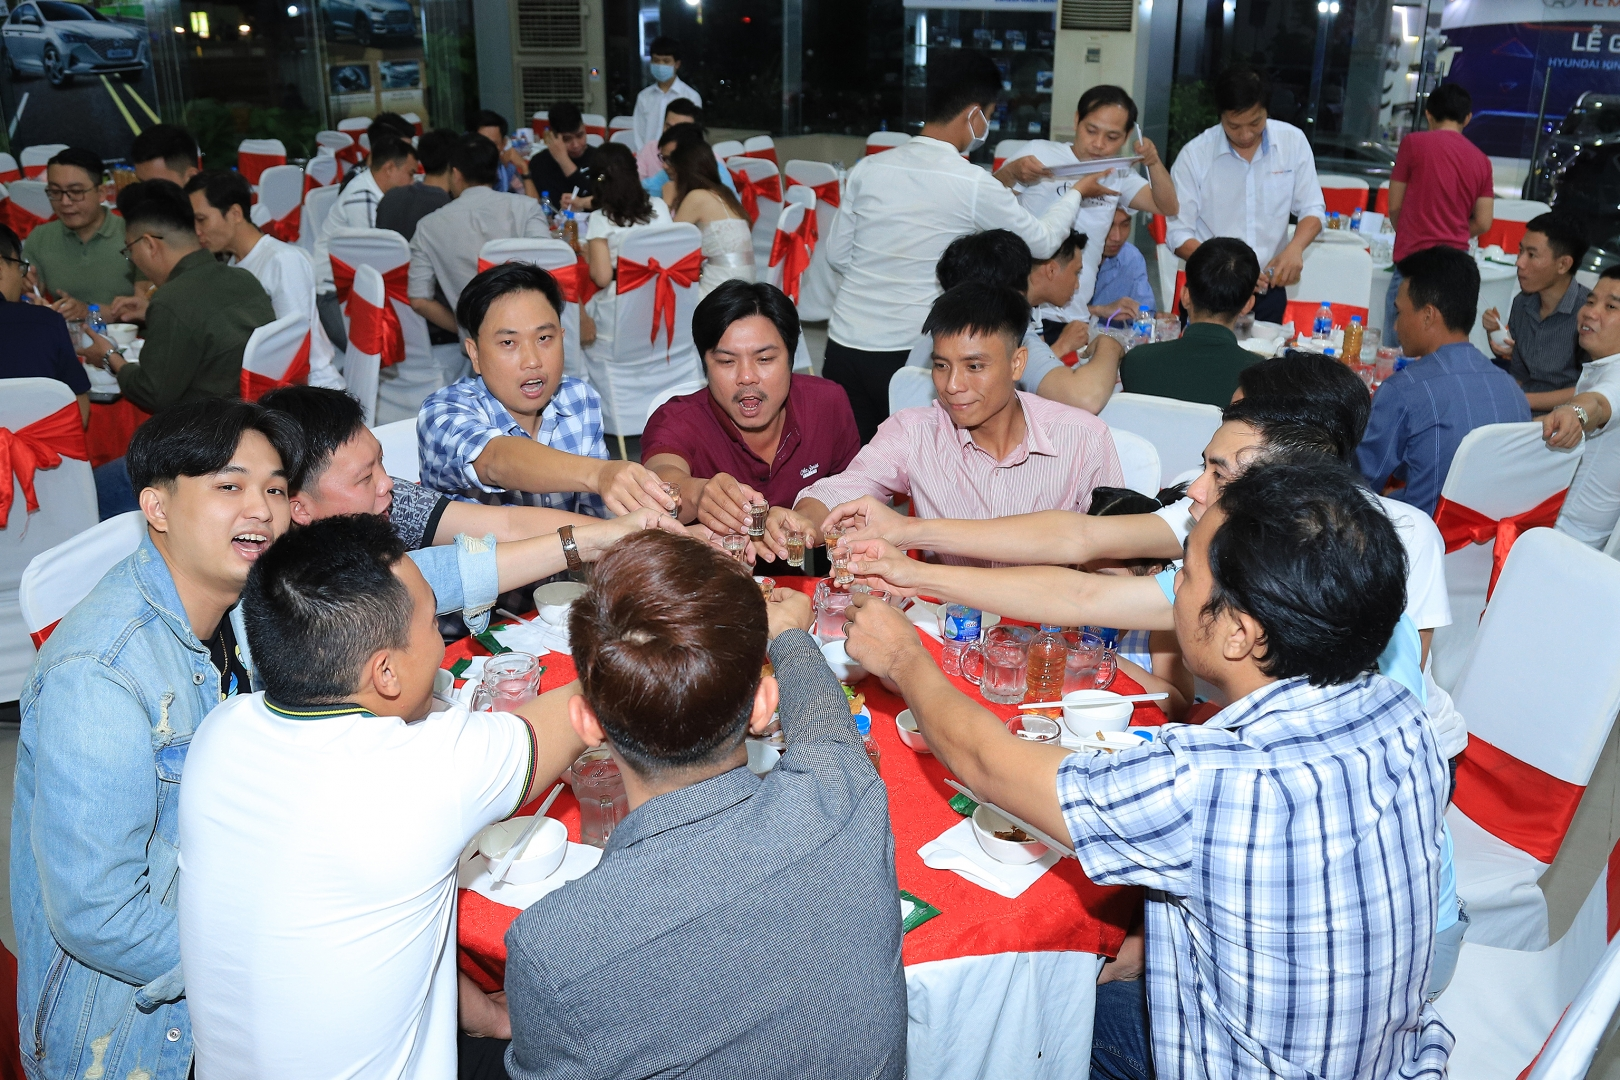 YEAR END PARTY NGUYEN QUANG COMPANY